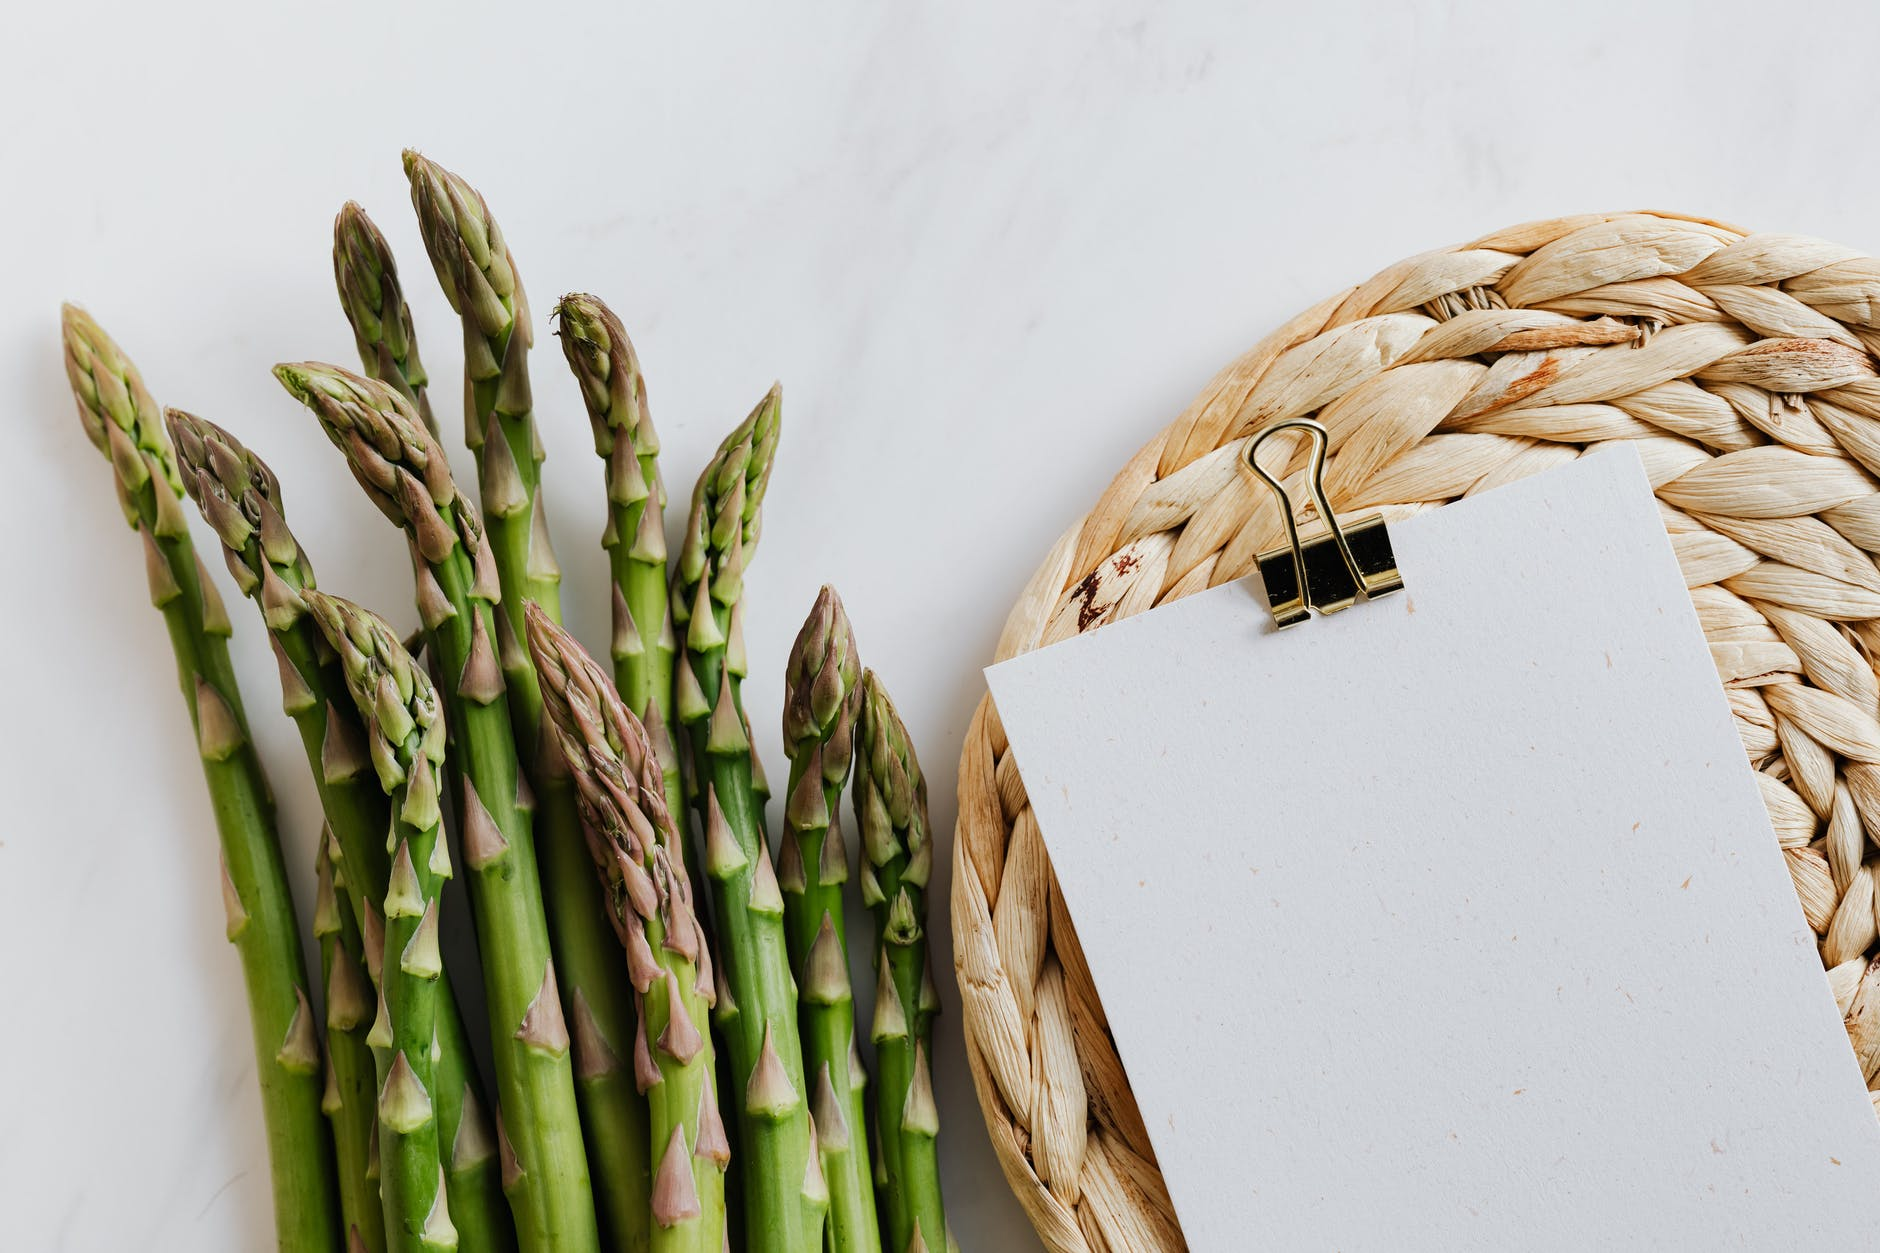 asparagus pods with paper sheet on table